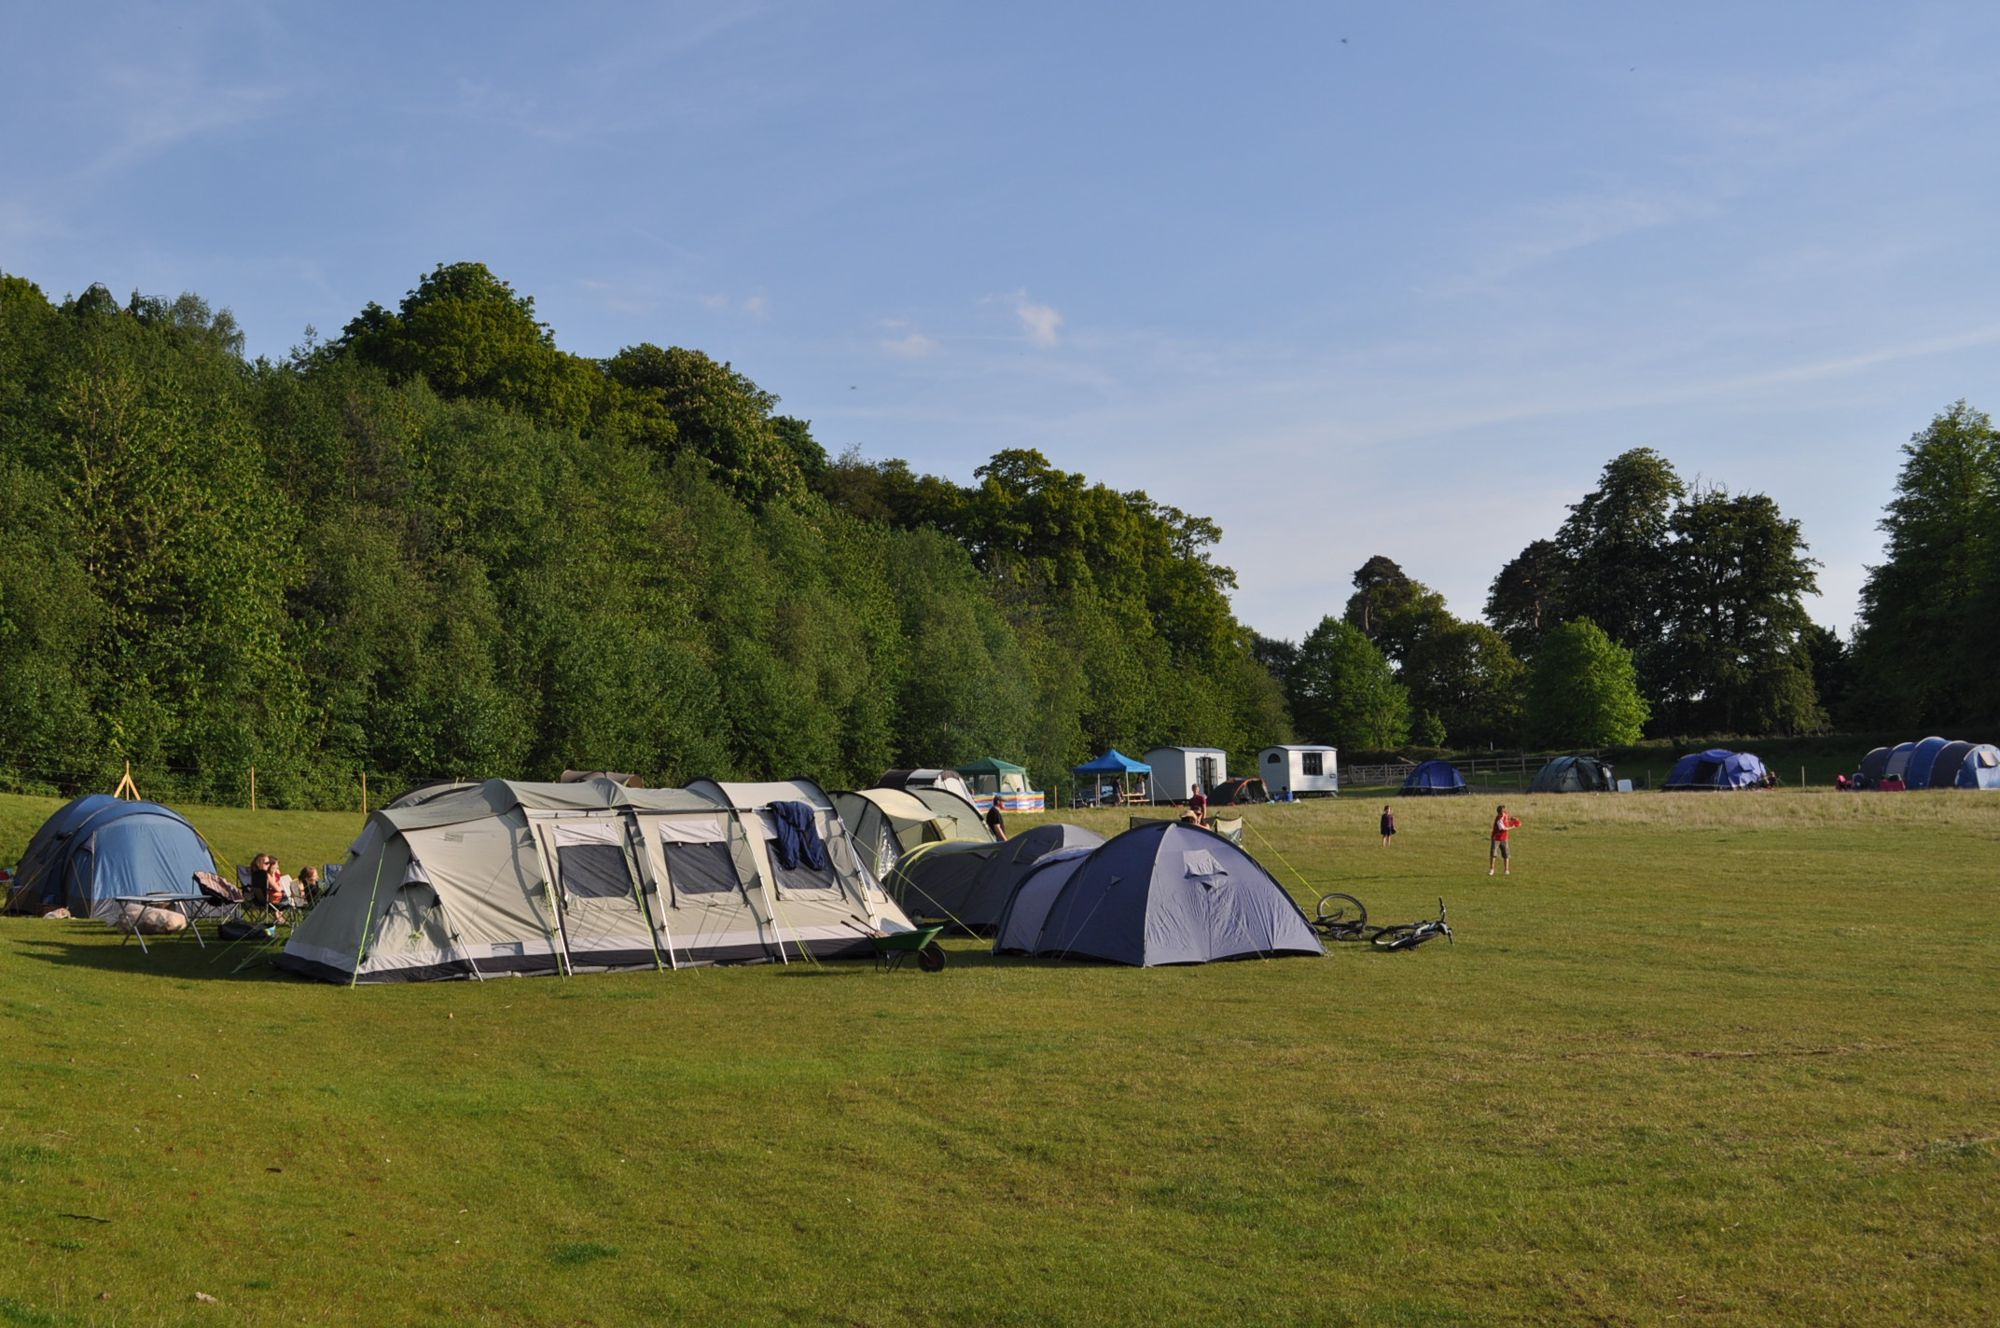 Campsites in Norwich – Glampingly